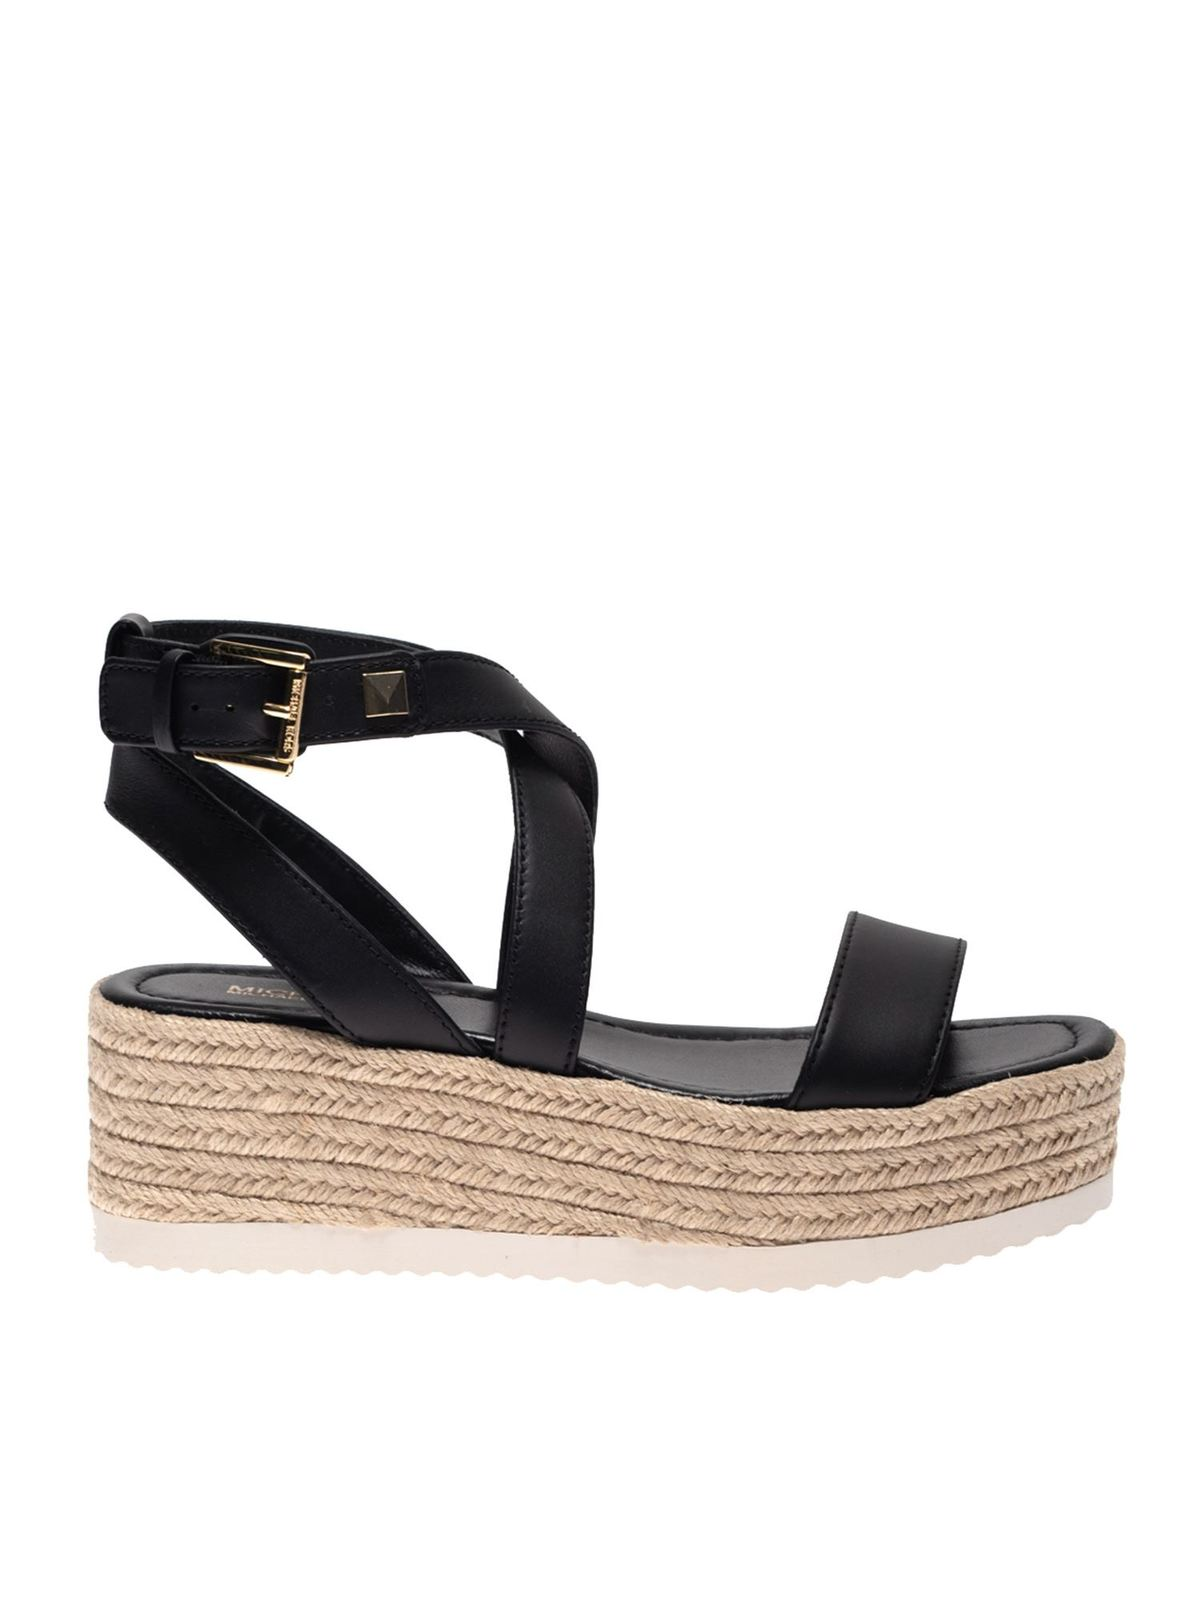 Michael Kors Leathers LOWRY SANDALS IN BLACK